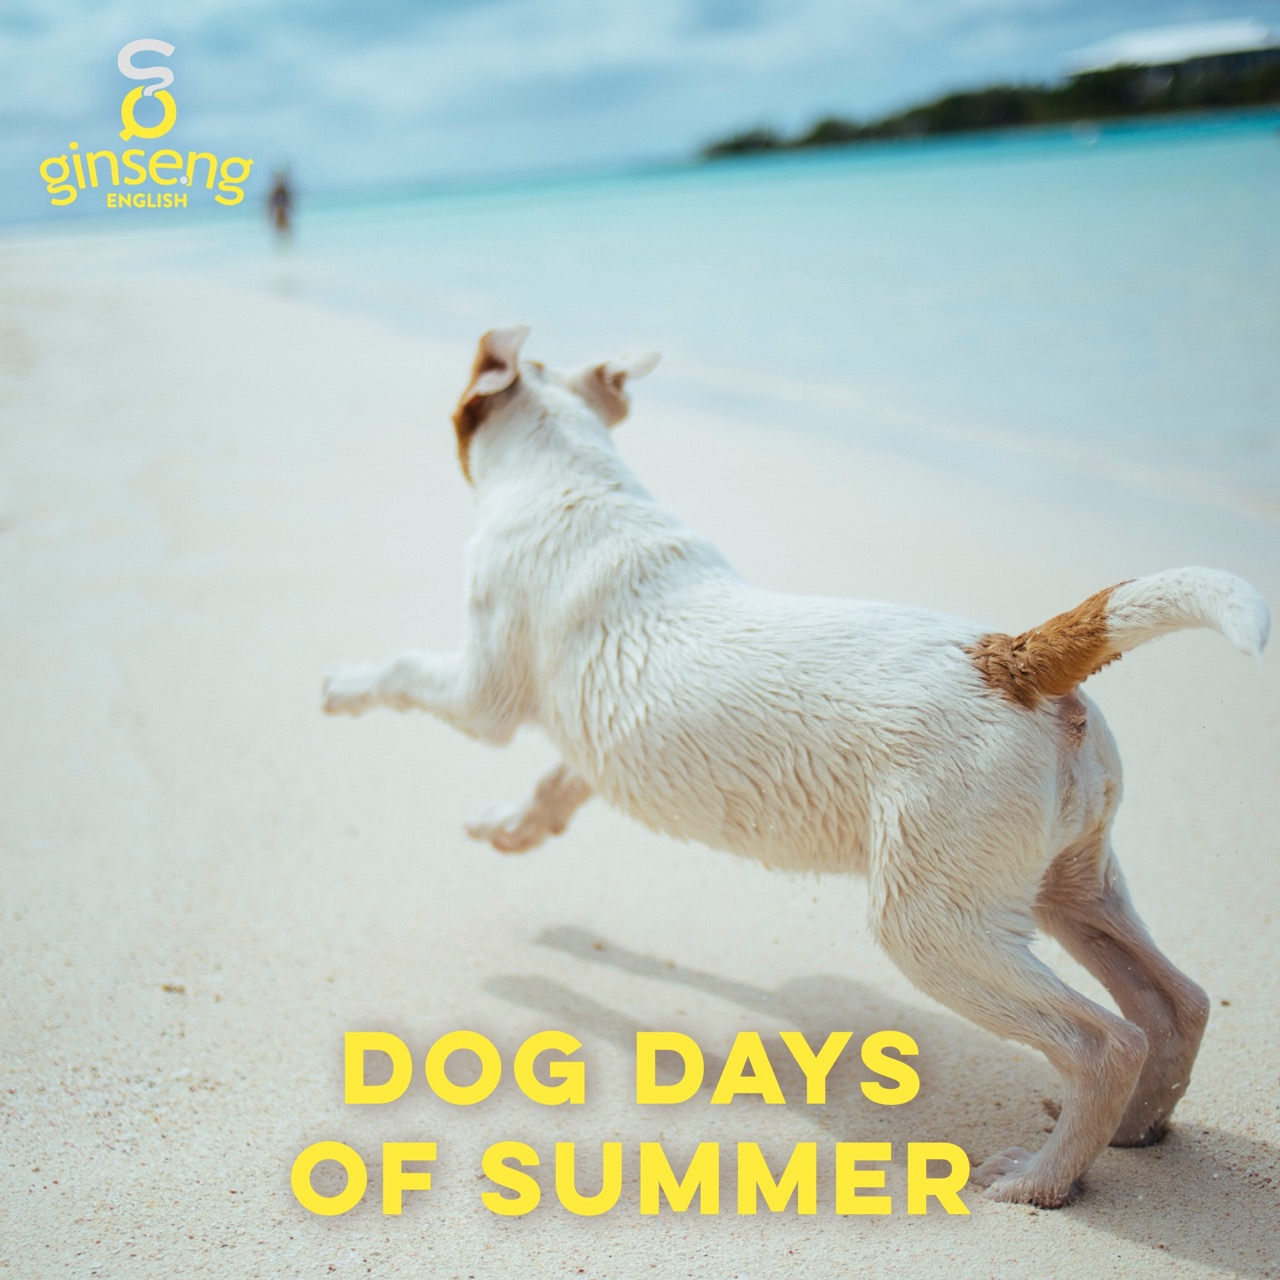 Check out another summer idiom in our Dog Idiom blog post!